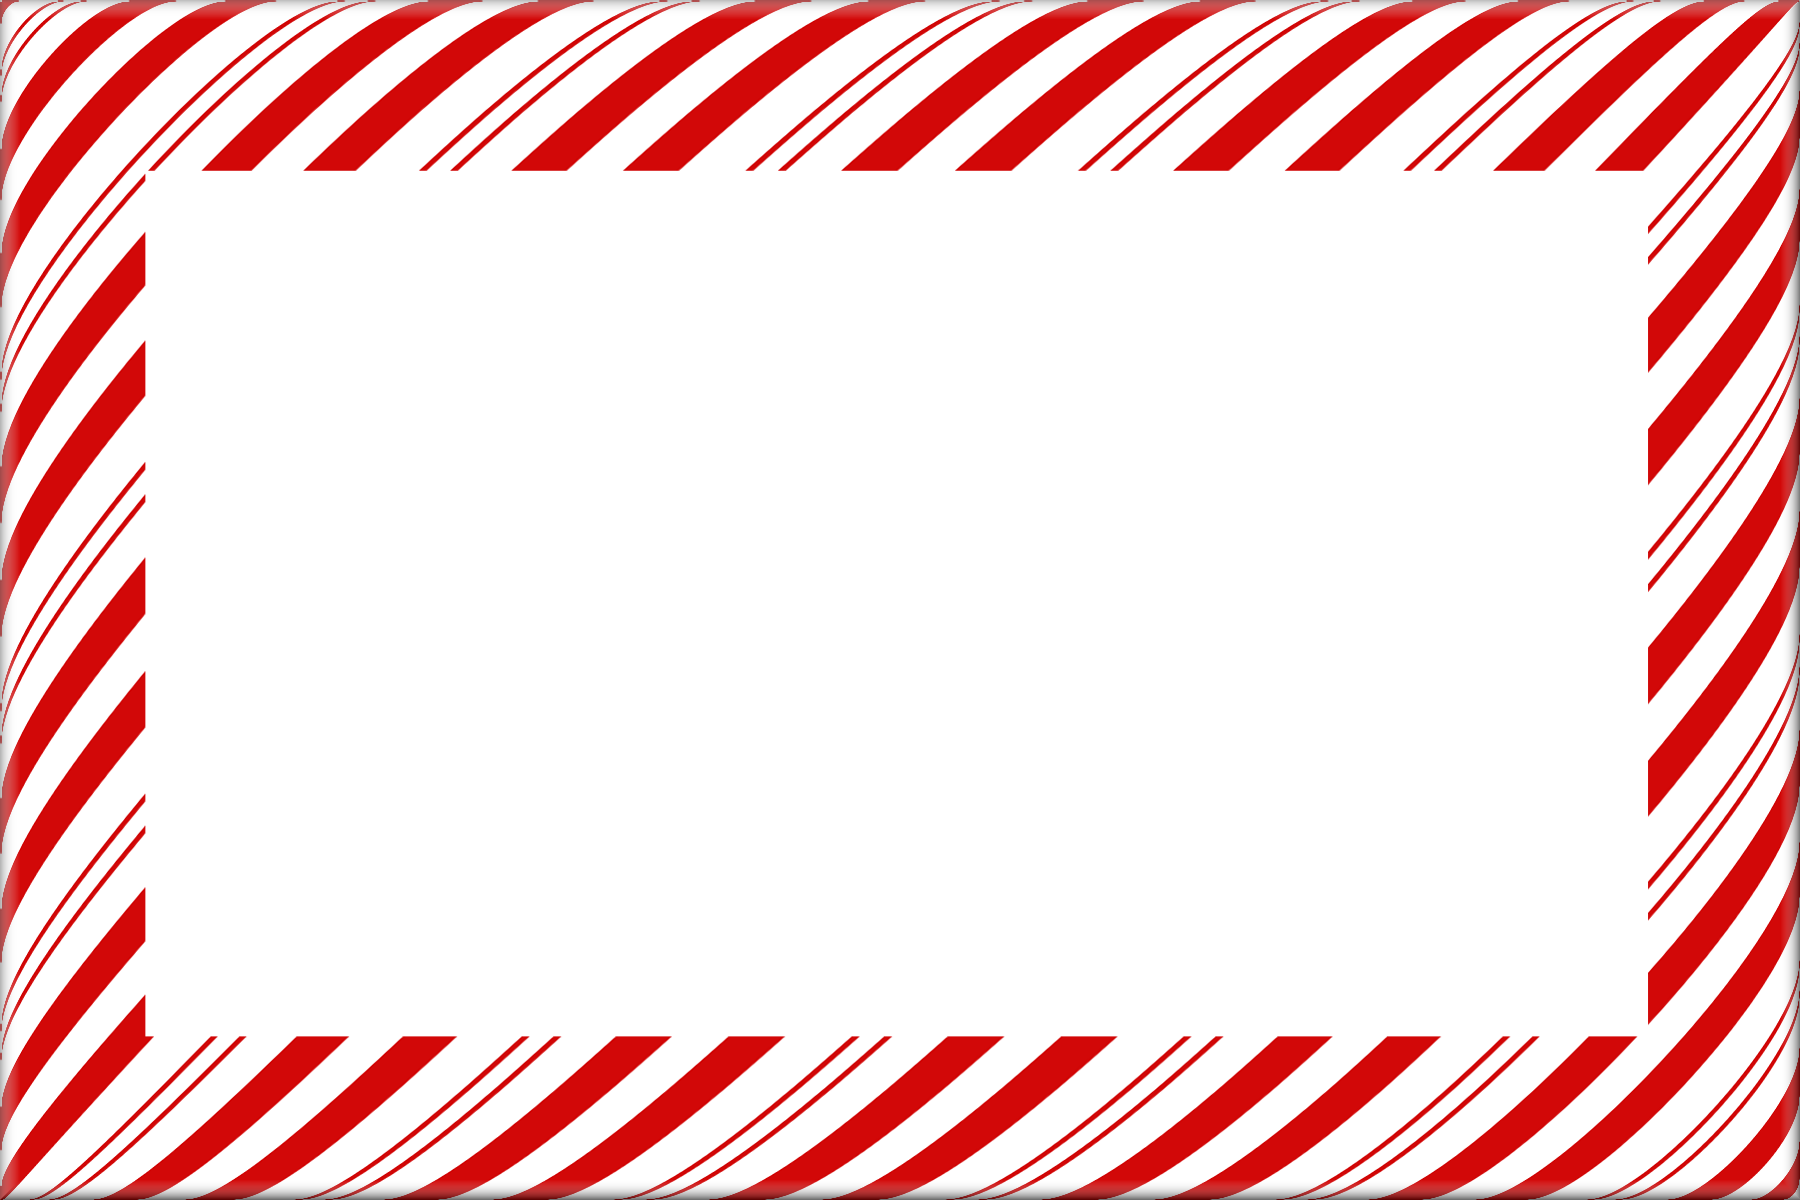 12 Candy Cane Psd Frame Images - Candy Cane Christmas Borders and ...